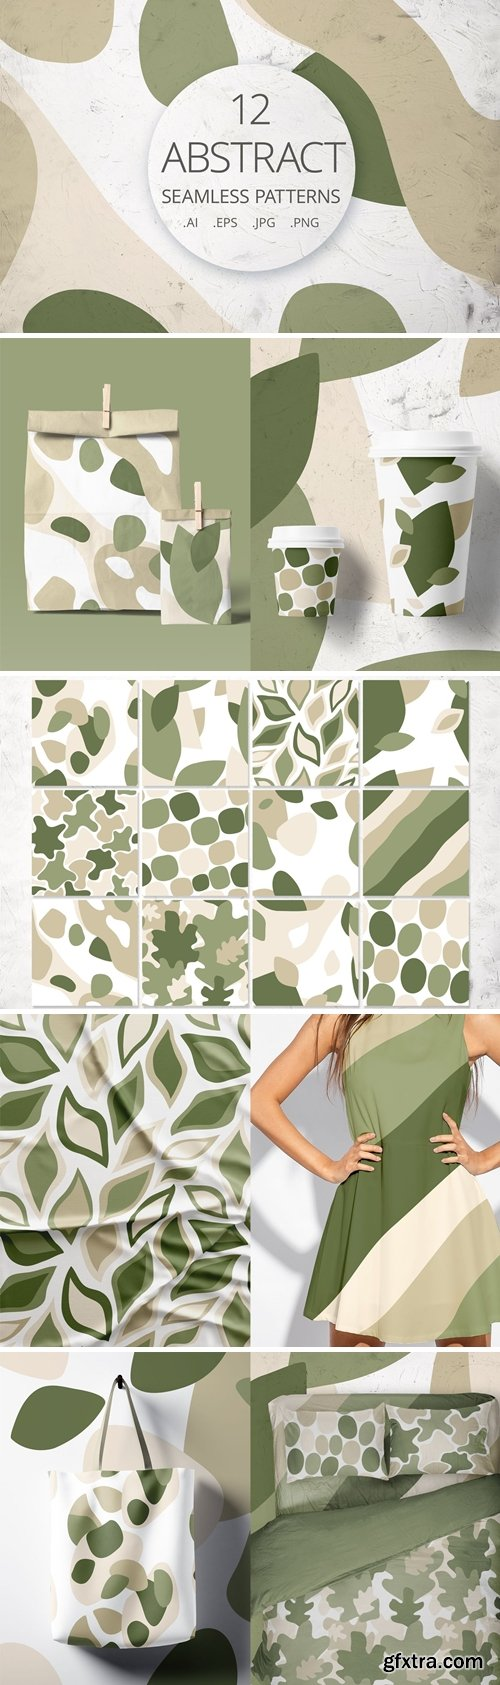 CreativeMarket - 12 abstract patterns 5089648